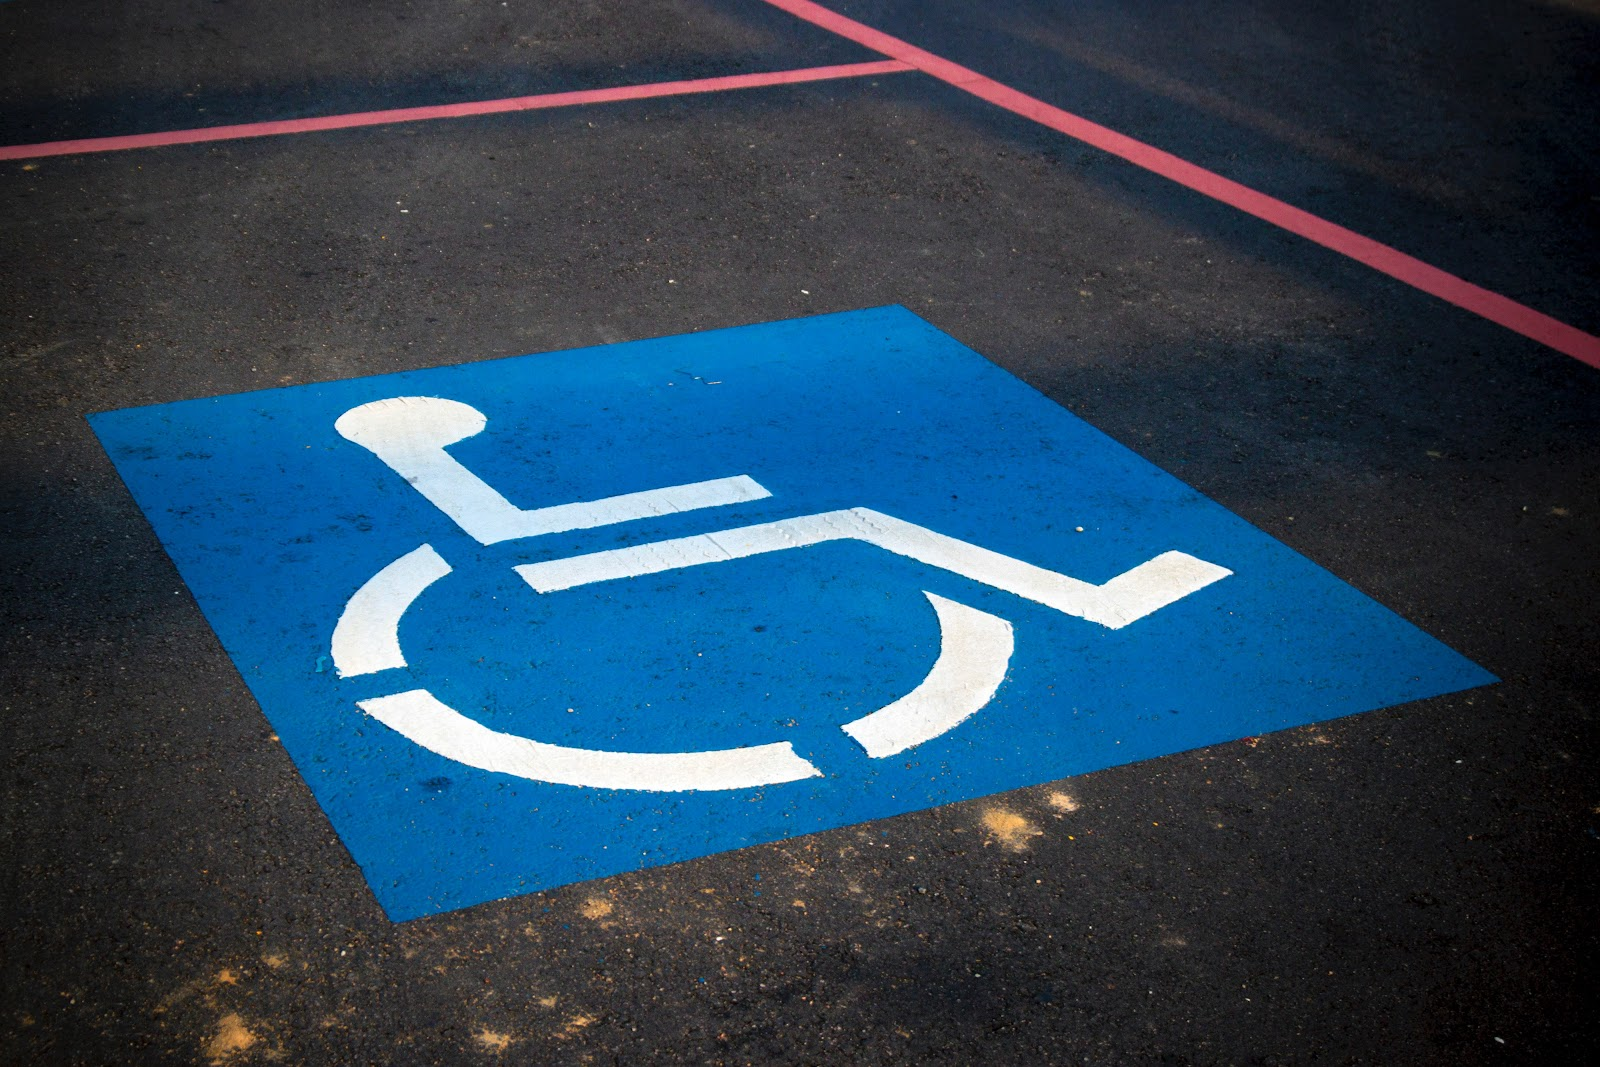 My neighbor has a disabled parking bay, can I use it?